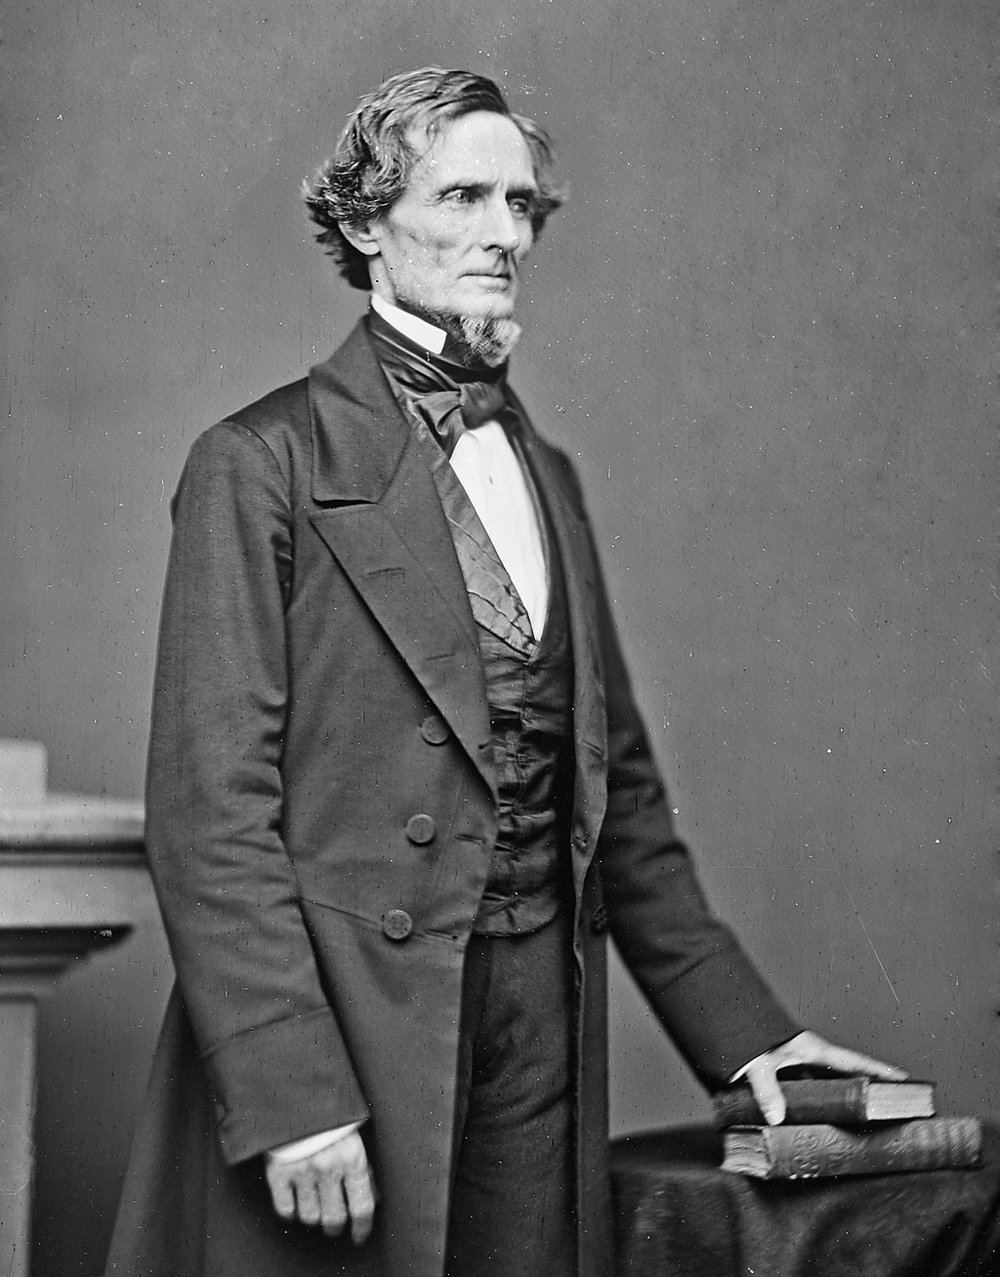 Jefferson Davis, the President of the Confederate States during the US Civil War.